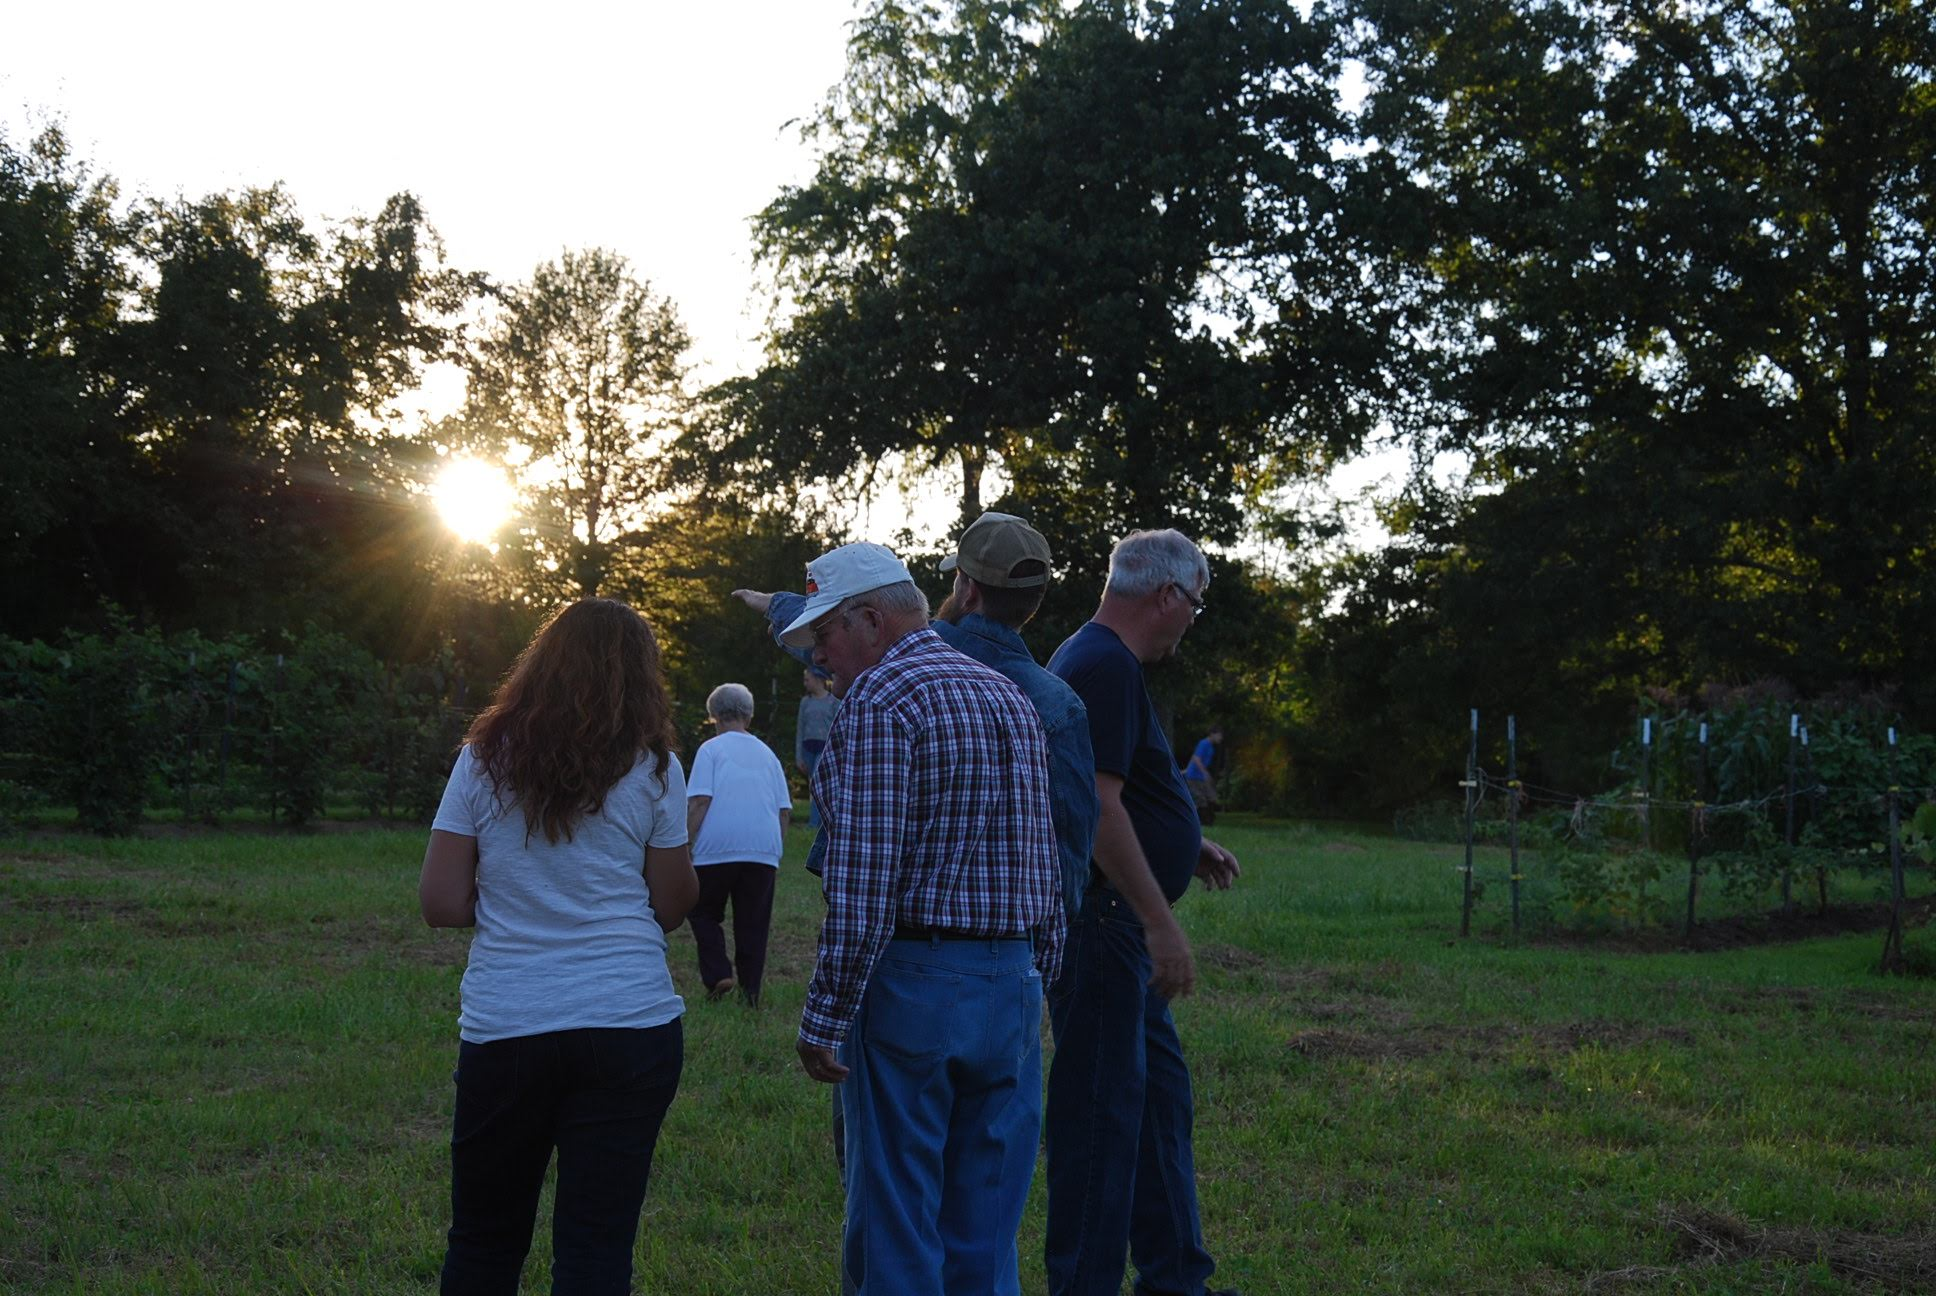 My grandpa, Joe Elmore (white hat), faced his sunset in July 2019.  The photo is from a family visit to Crossville, Tennessee in the summer of 2014.